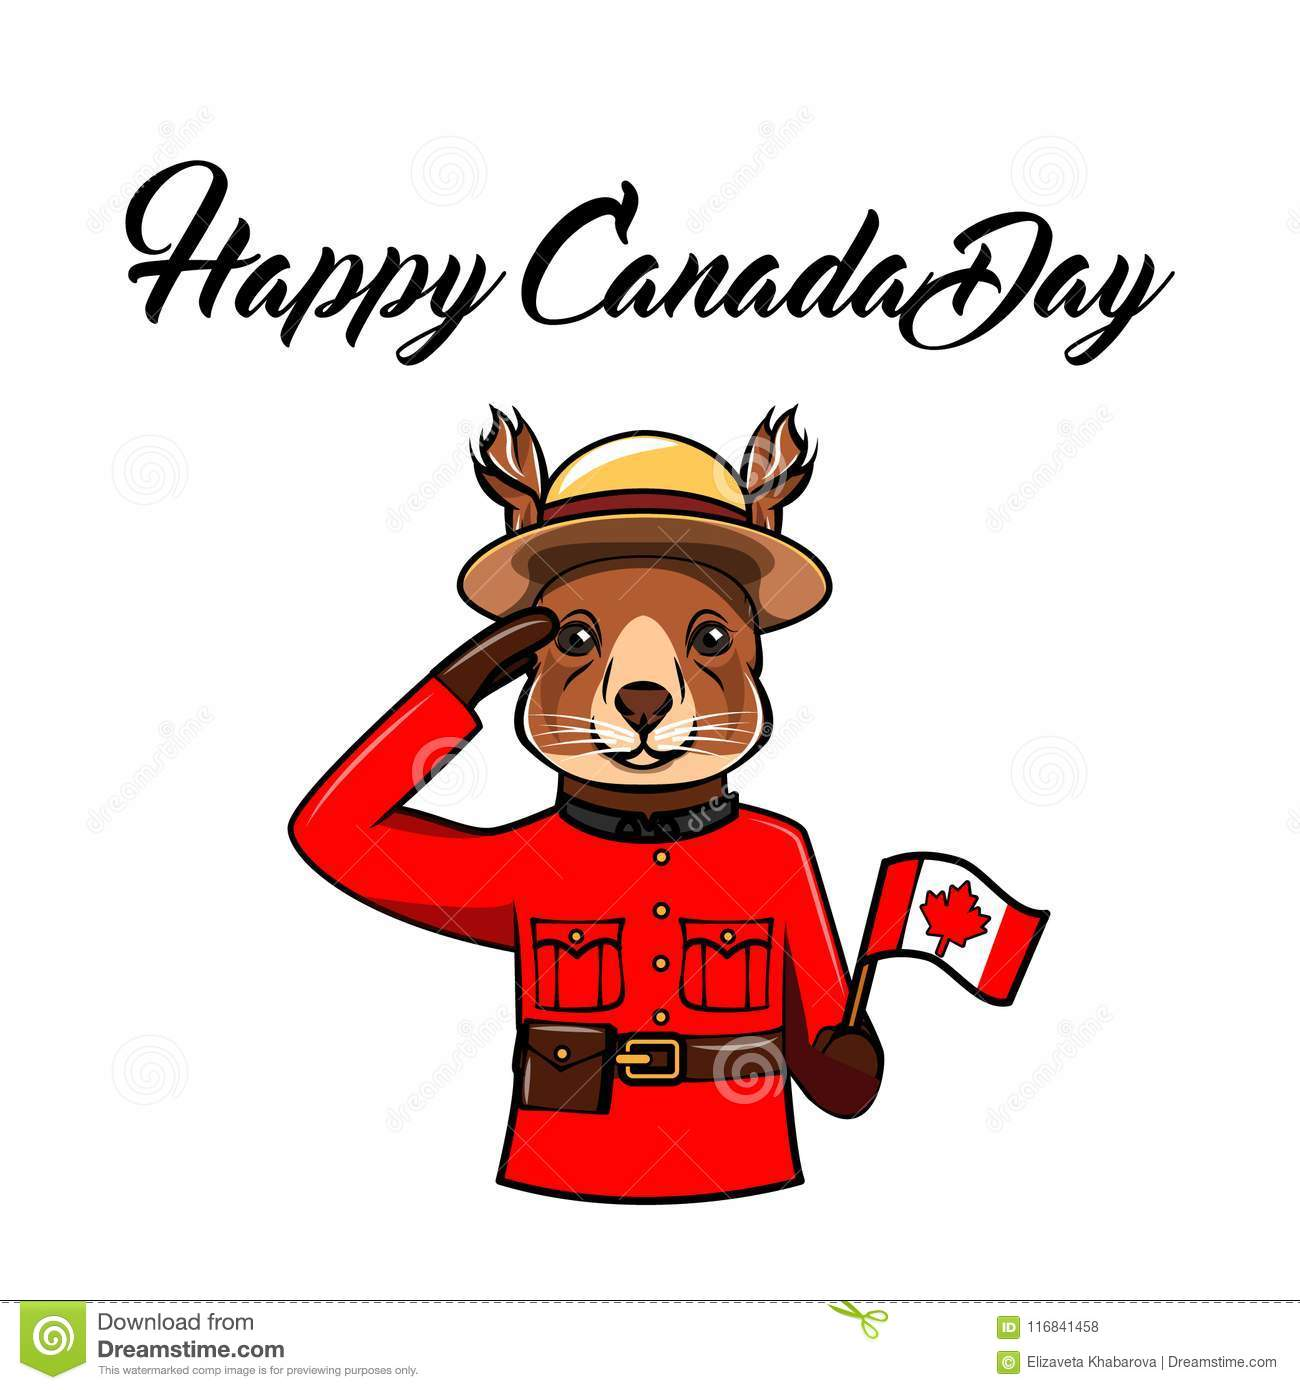 Squirrel Canada Day Greeting Card Animal Wearing In Form Of The